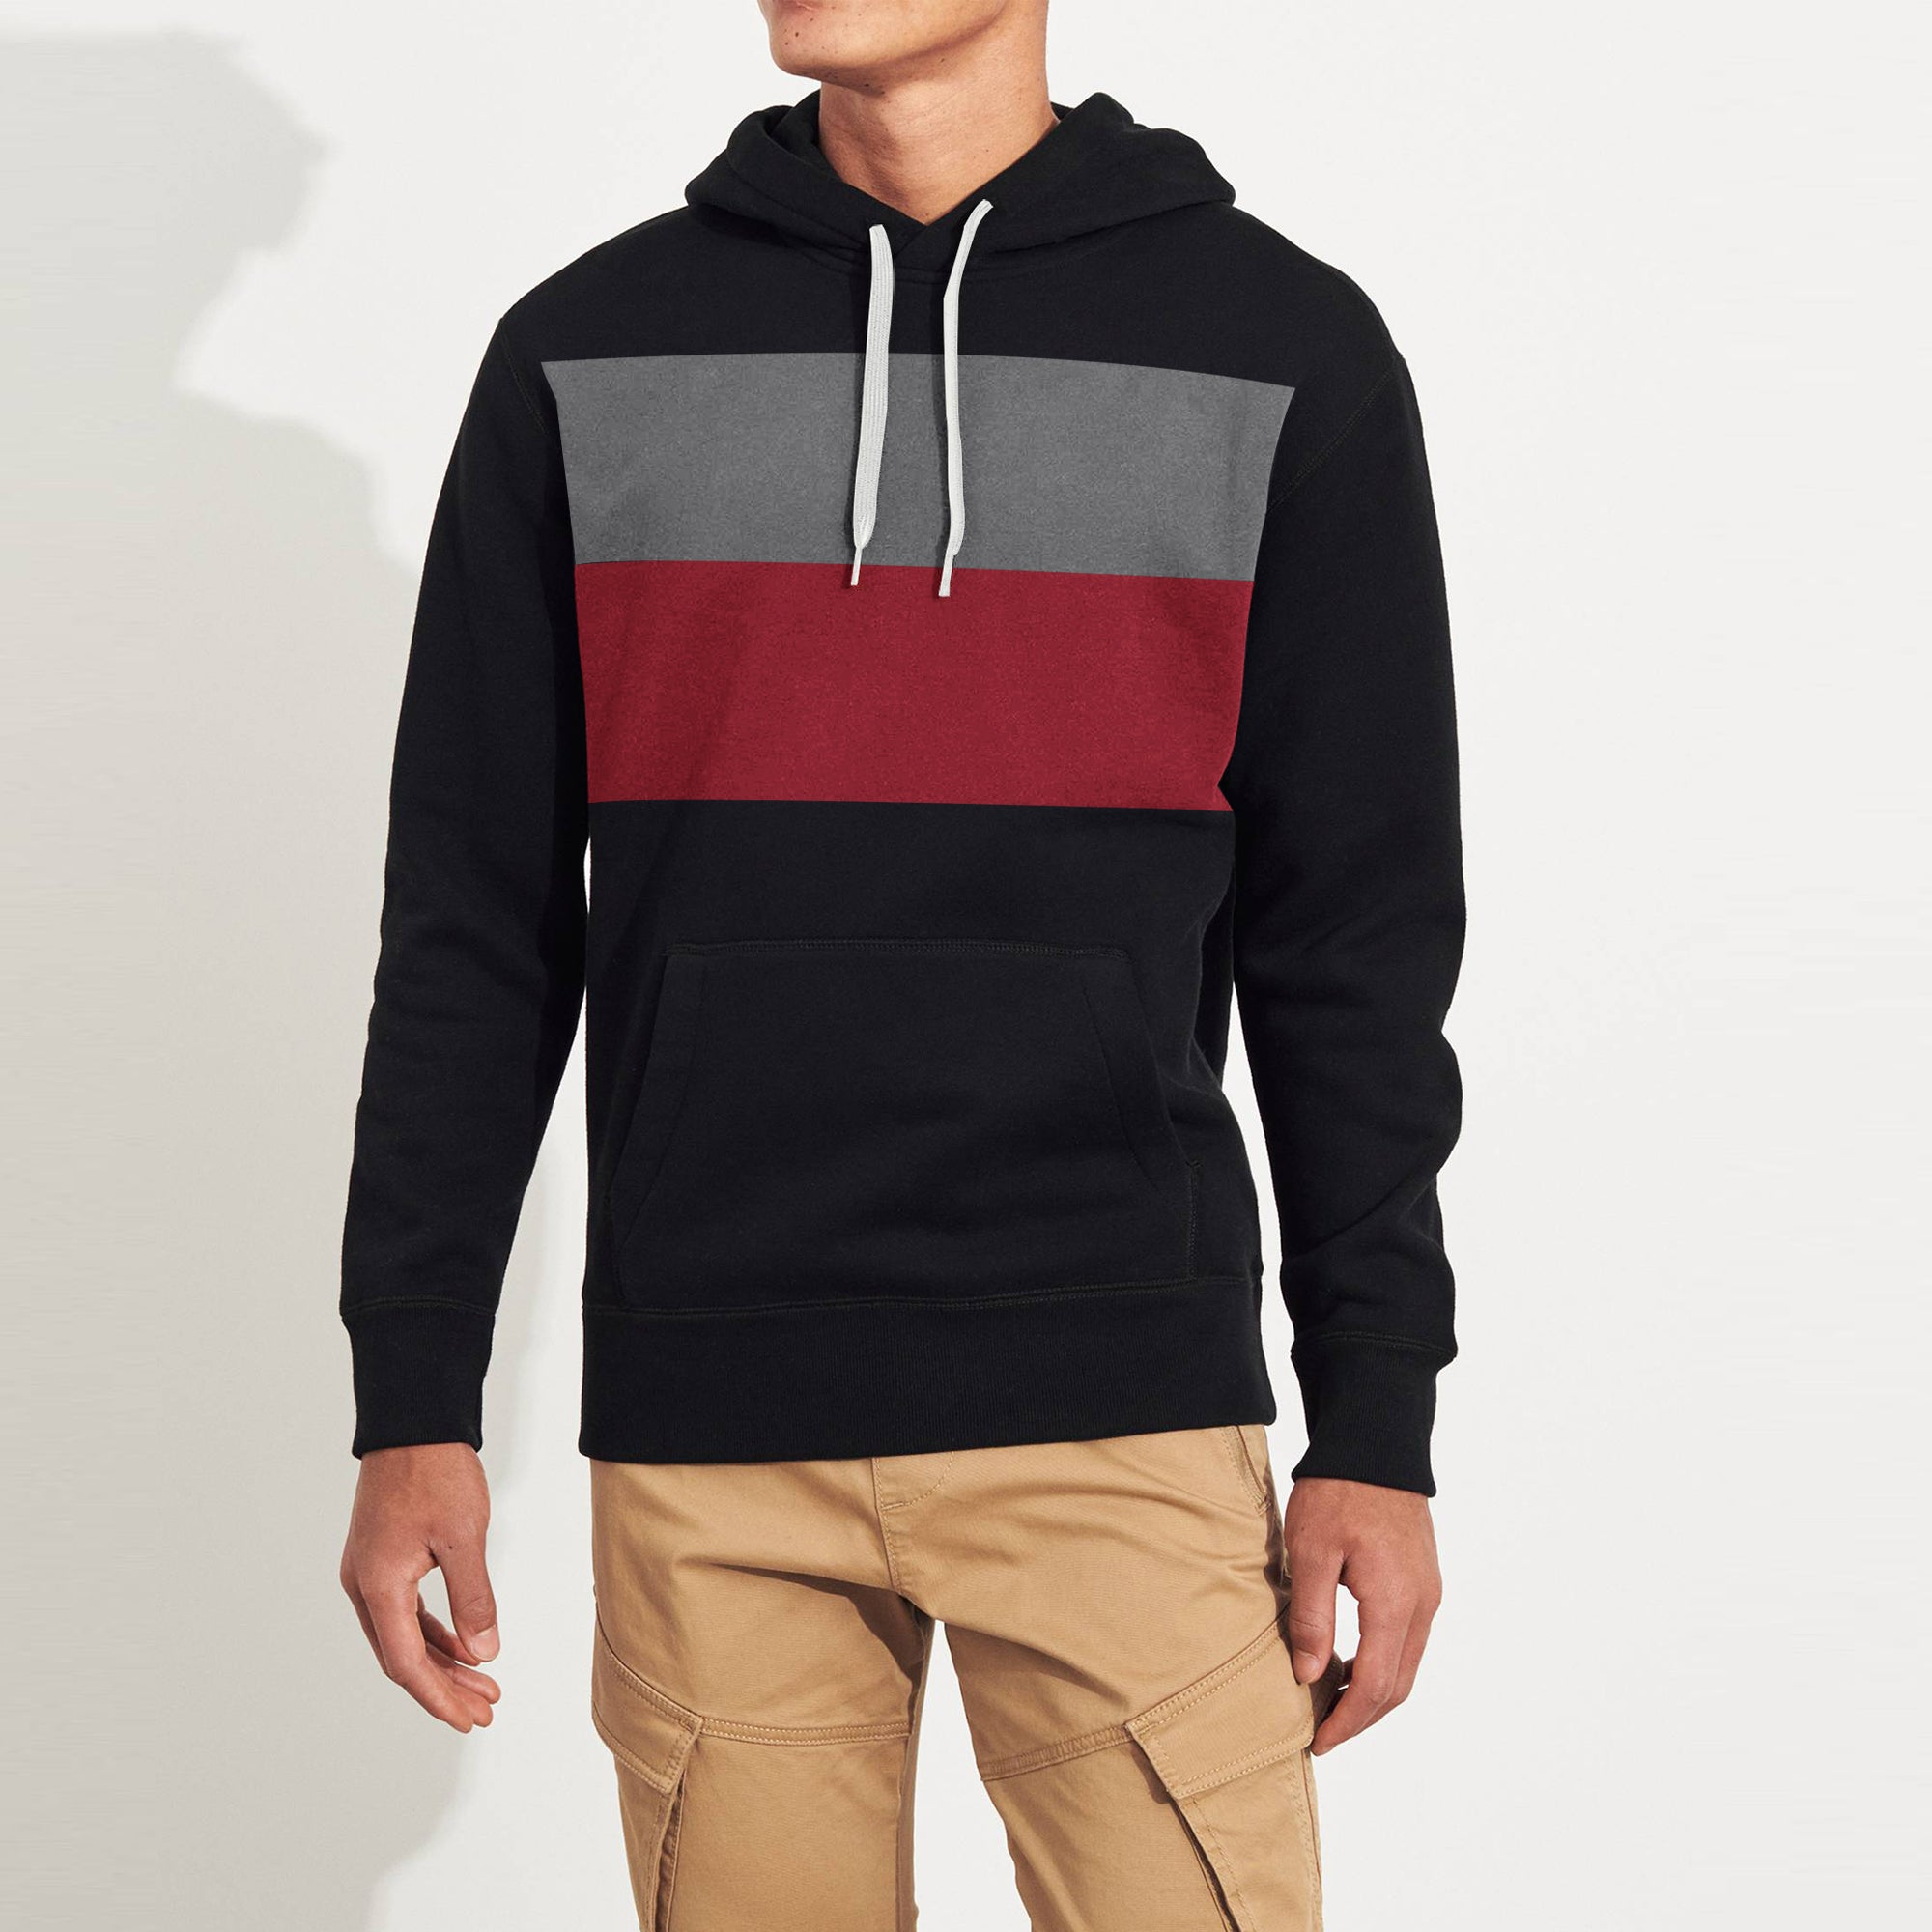 NK Fleece Pullover Hoodie For Men-Grey & Carrot Red Panels-SP1627